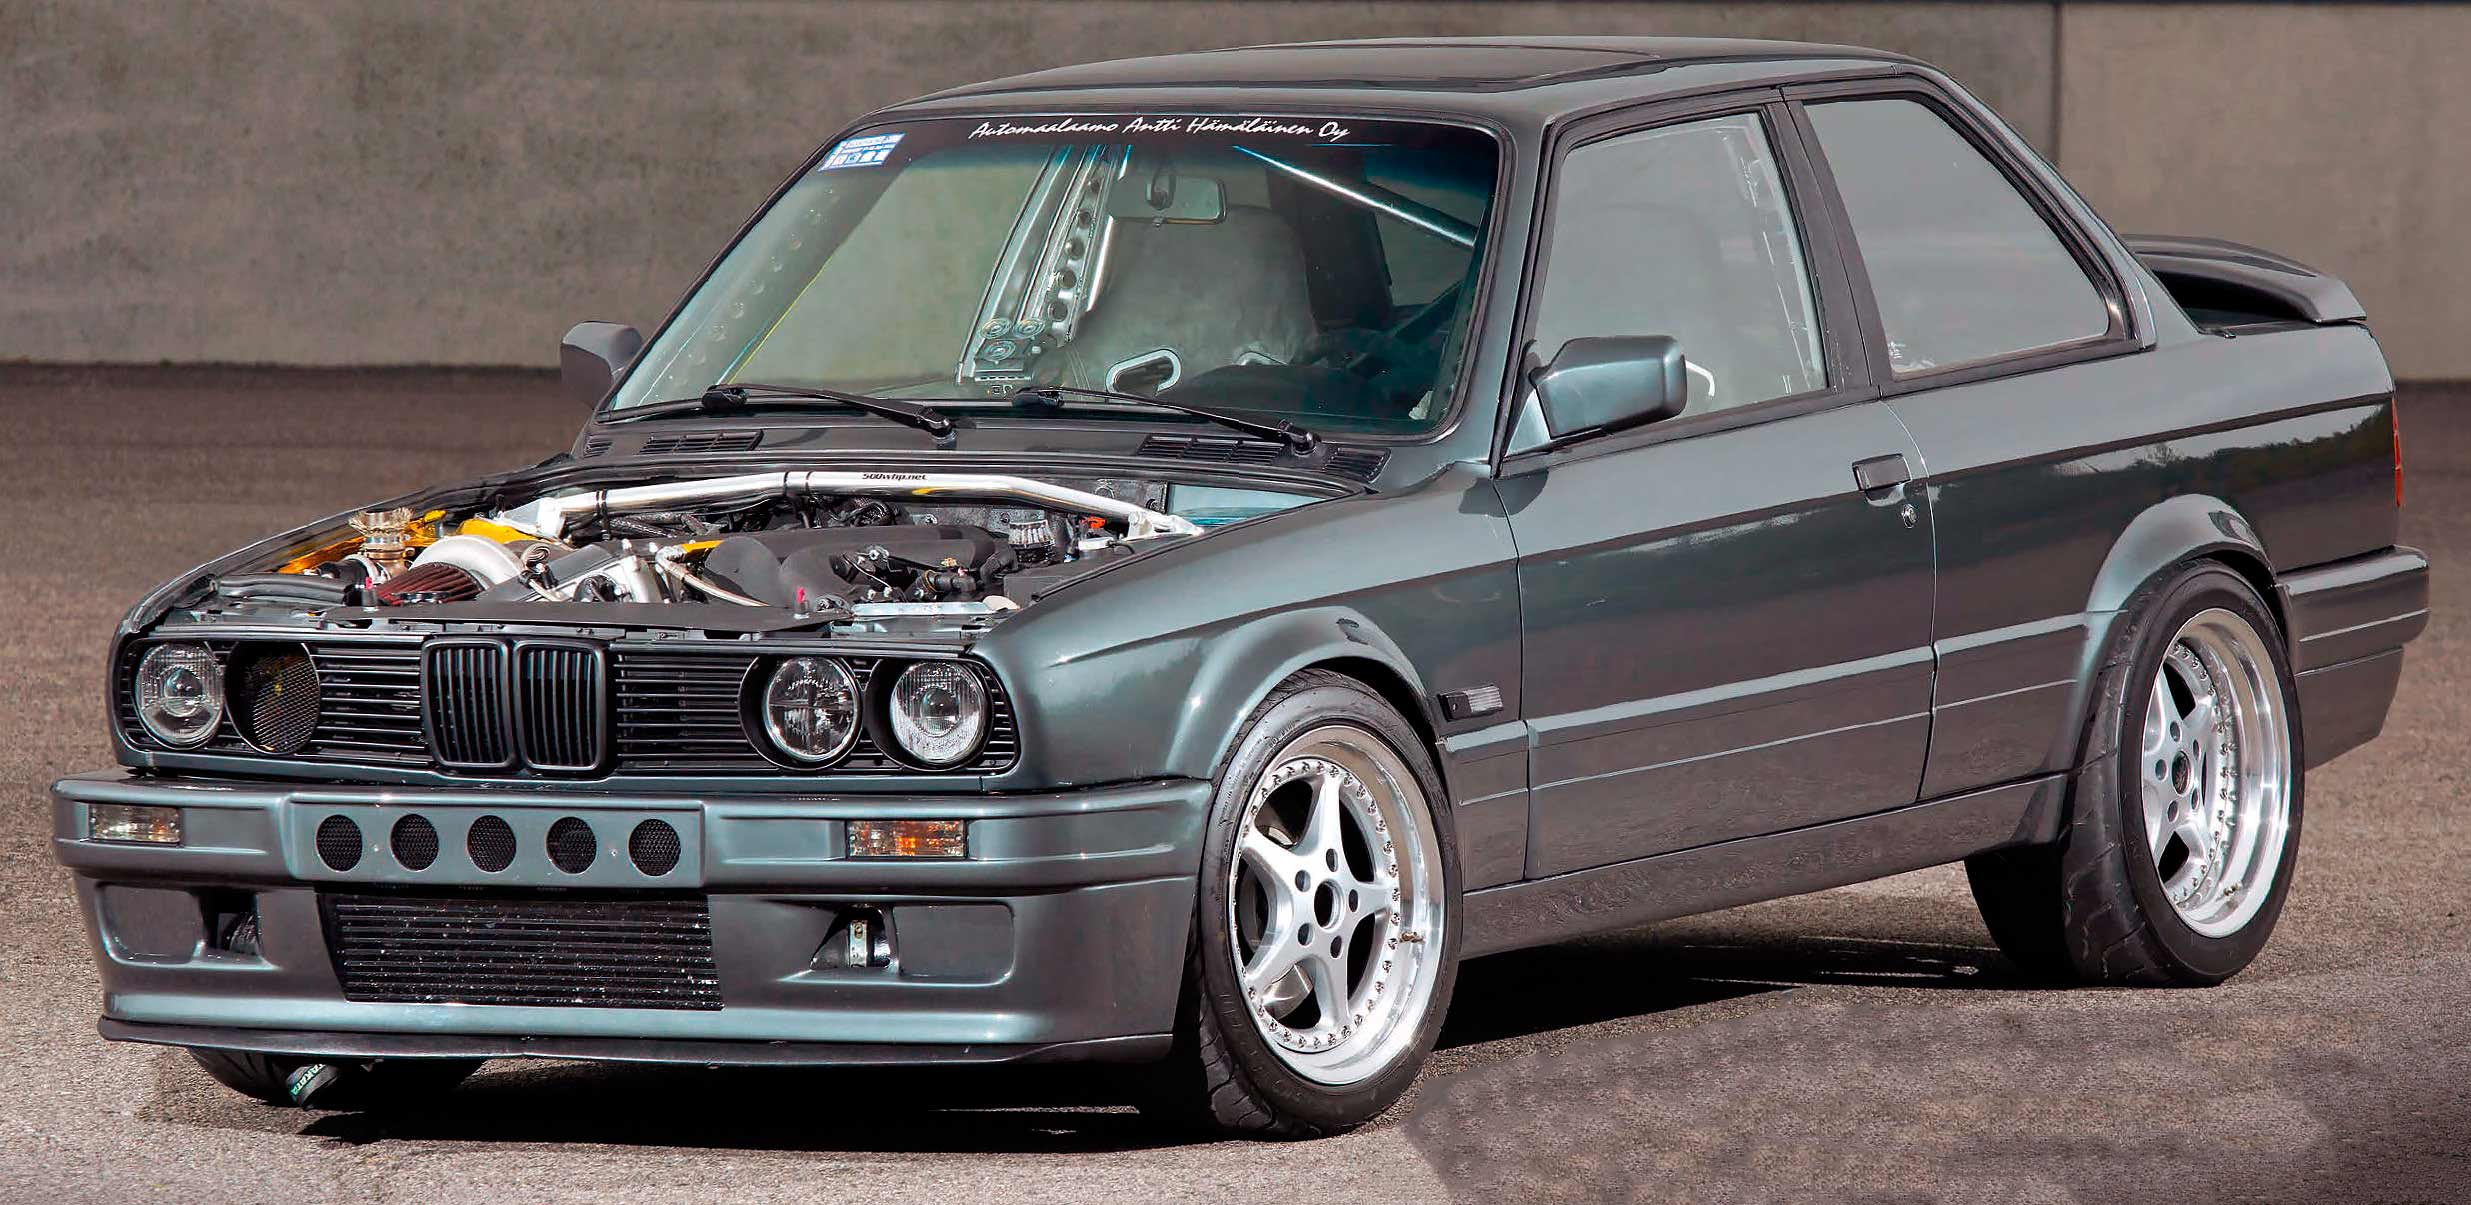 1081hp turbo s38 engined bmw e30 drive my blogs drive. Black Bedroom Furniture Sets. Home Design Ideas